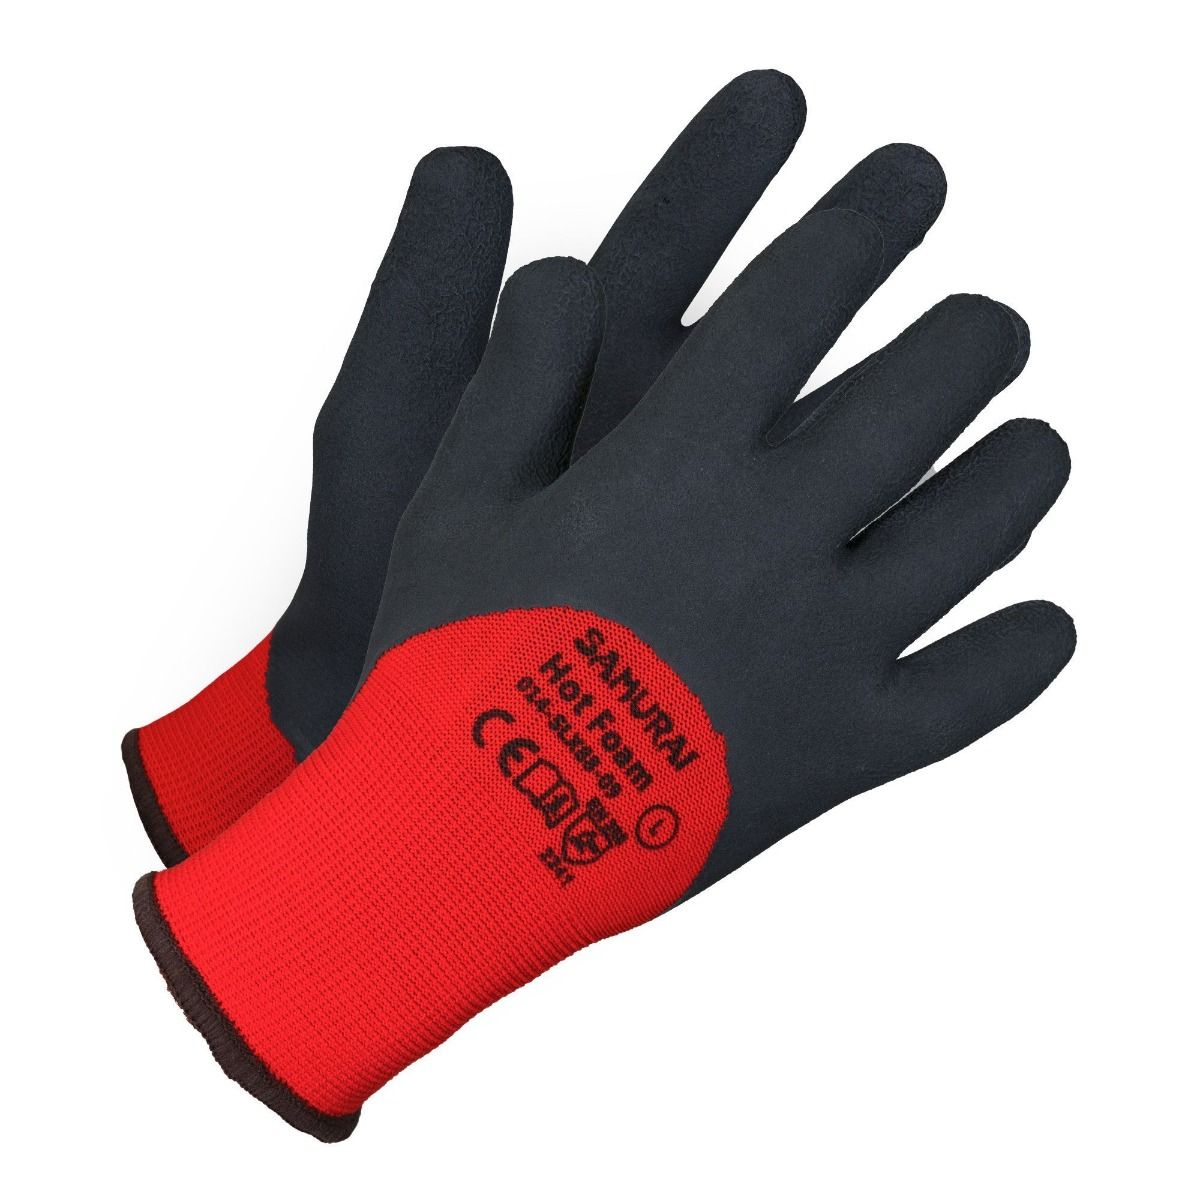 Samurai Hot Foam Insulated Work Gloves